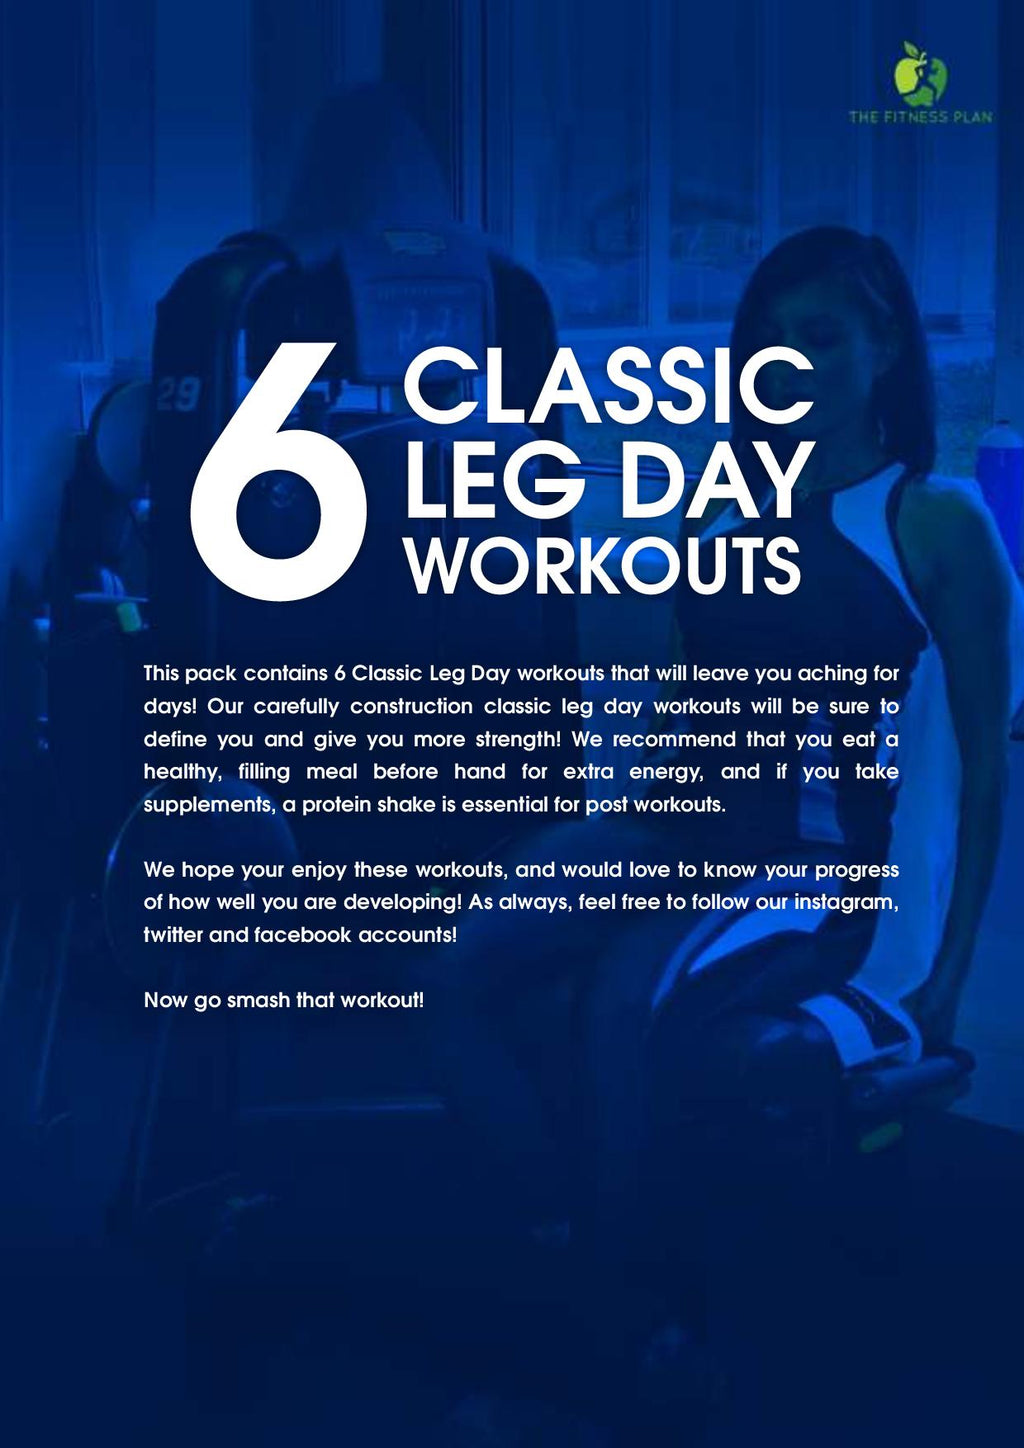 6 Classic Leg Day Workouts